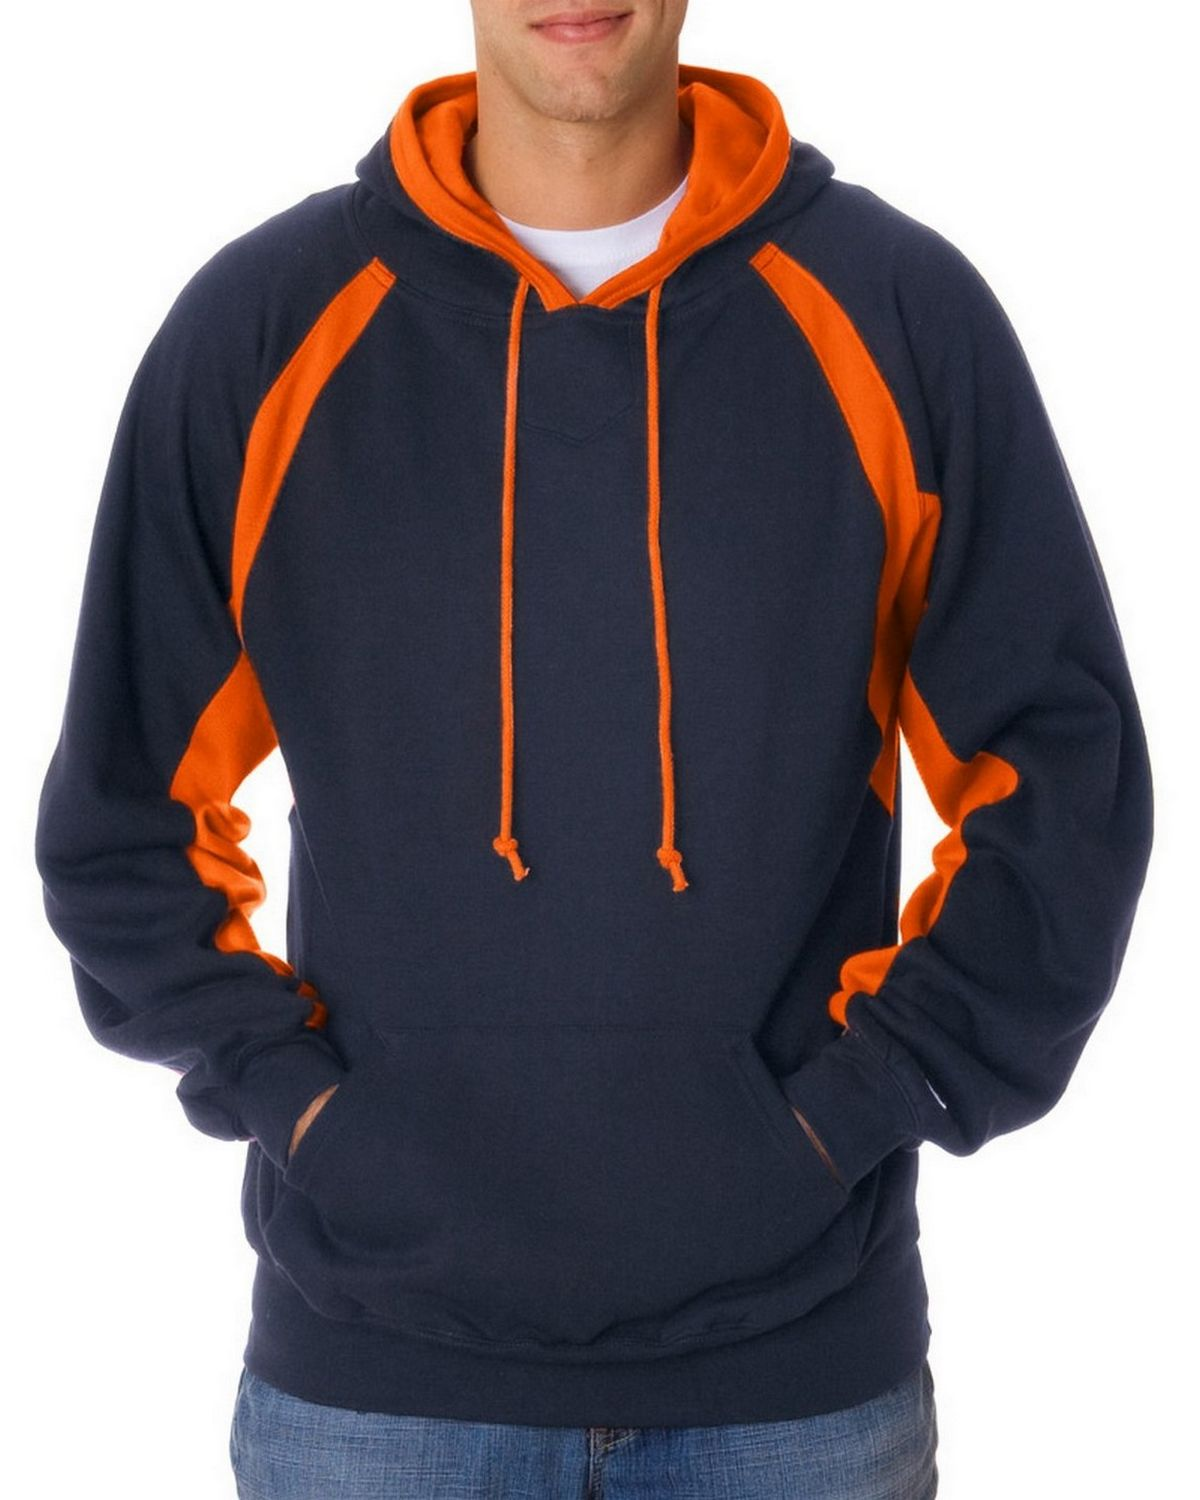 Badger 1262 Contrast Hook Hood - Navy/Burnt Orange - XL 1262